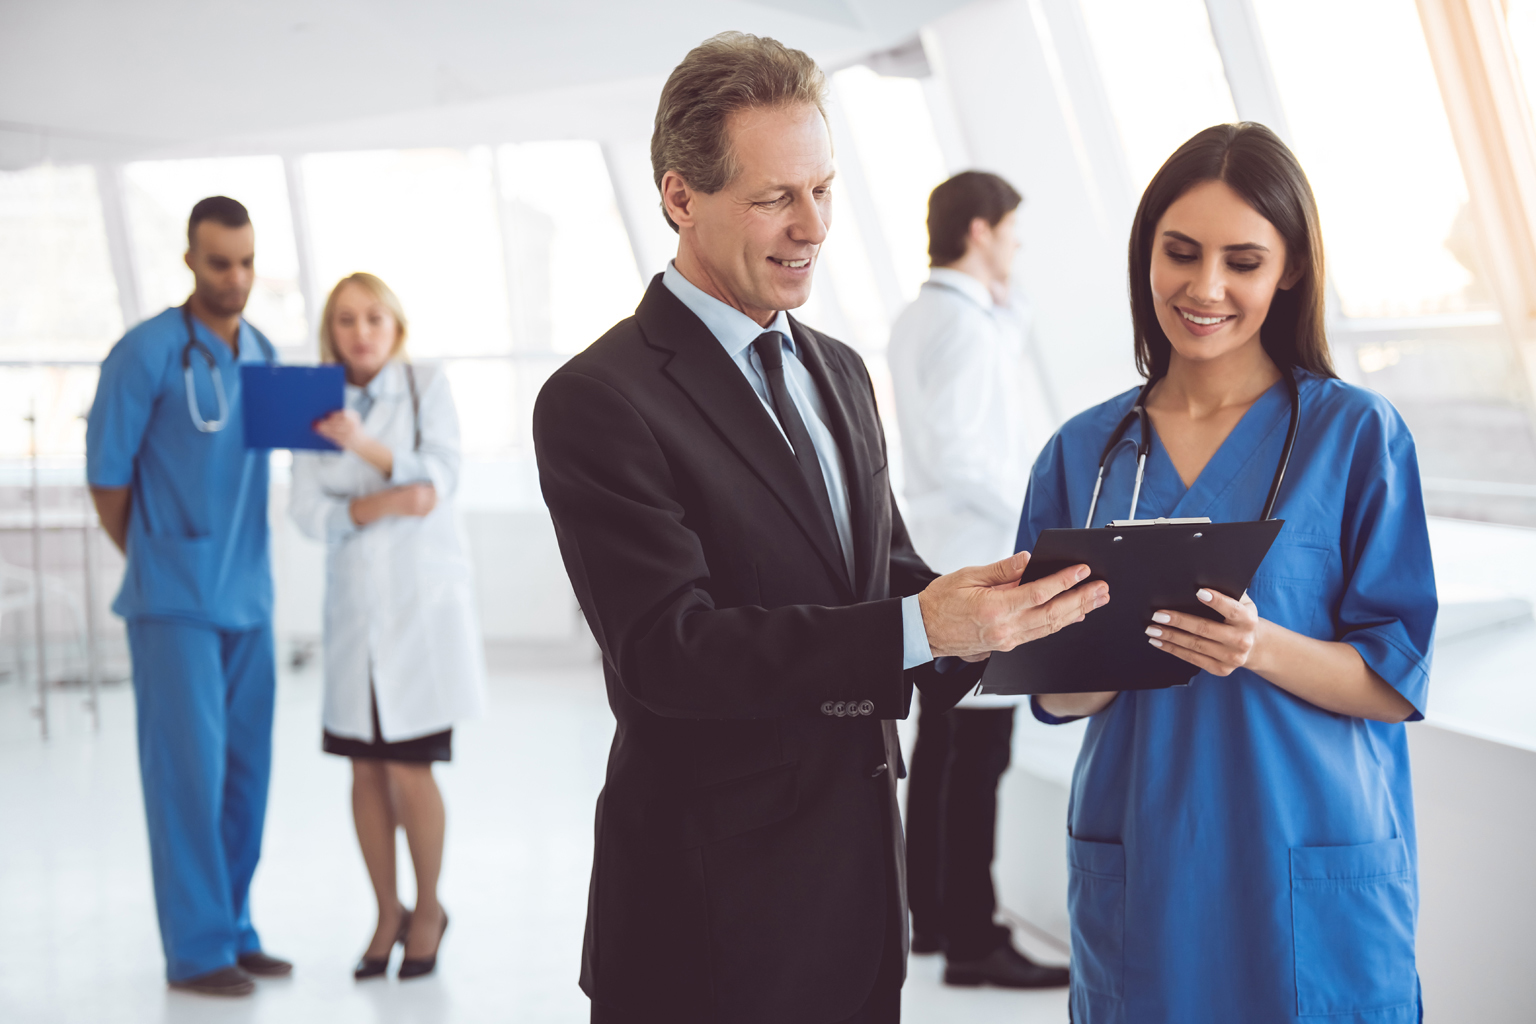 Tying healthcare CEO compensation to clinical performance